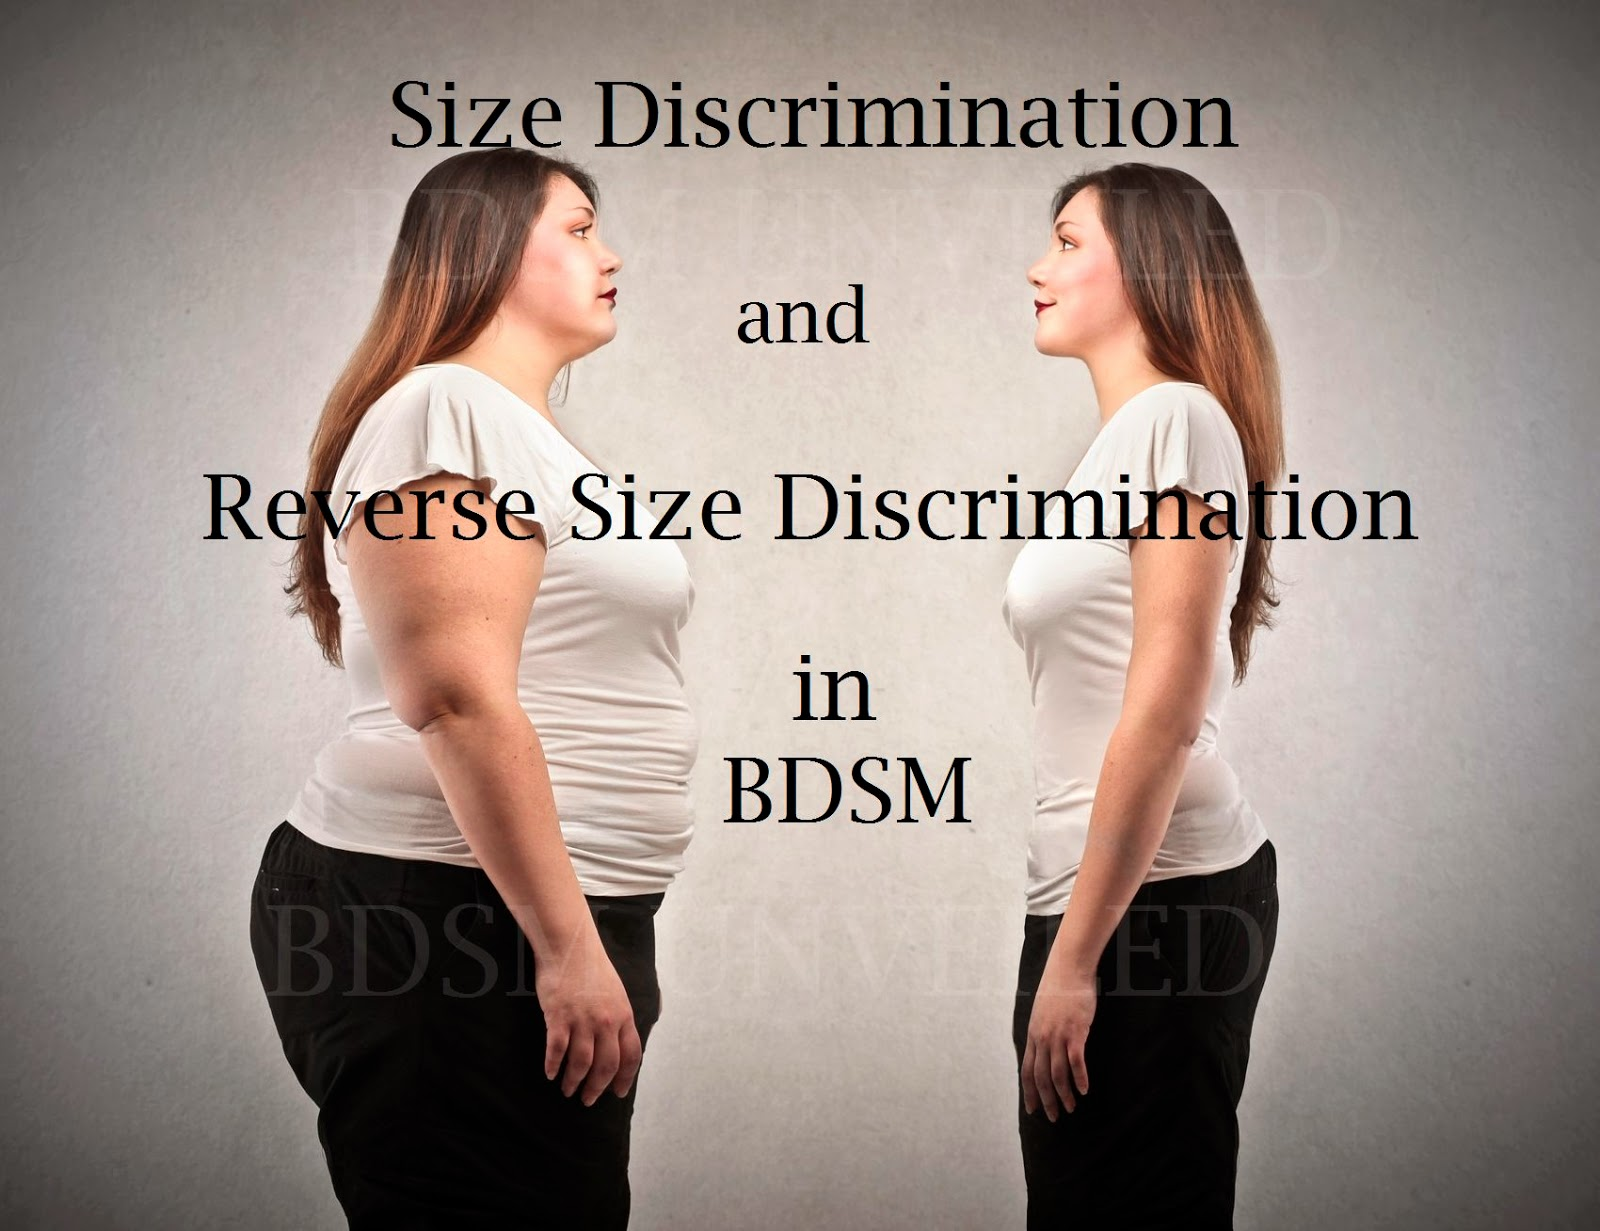 Size discrimination in BDSM